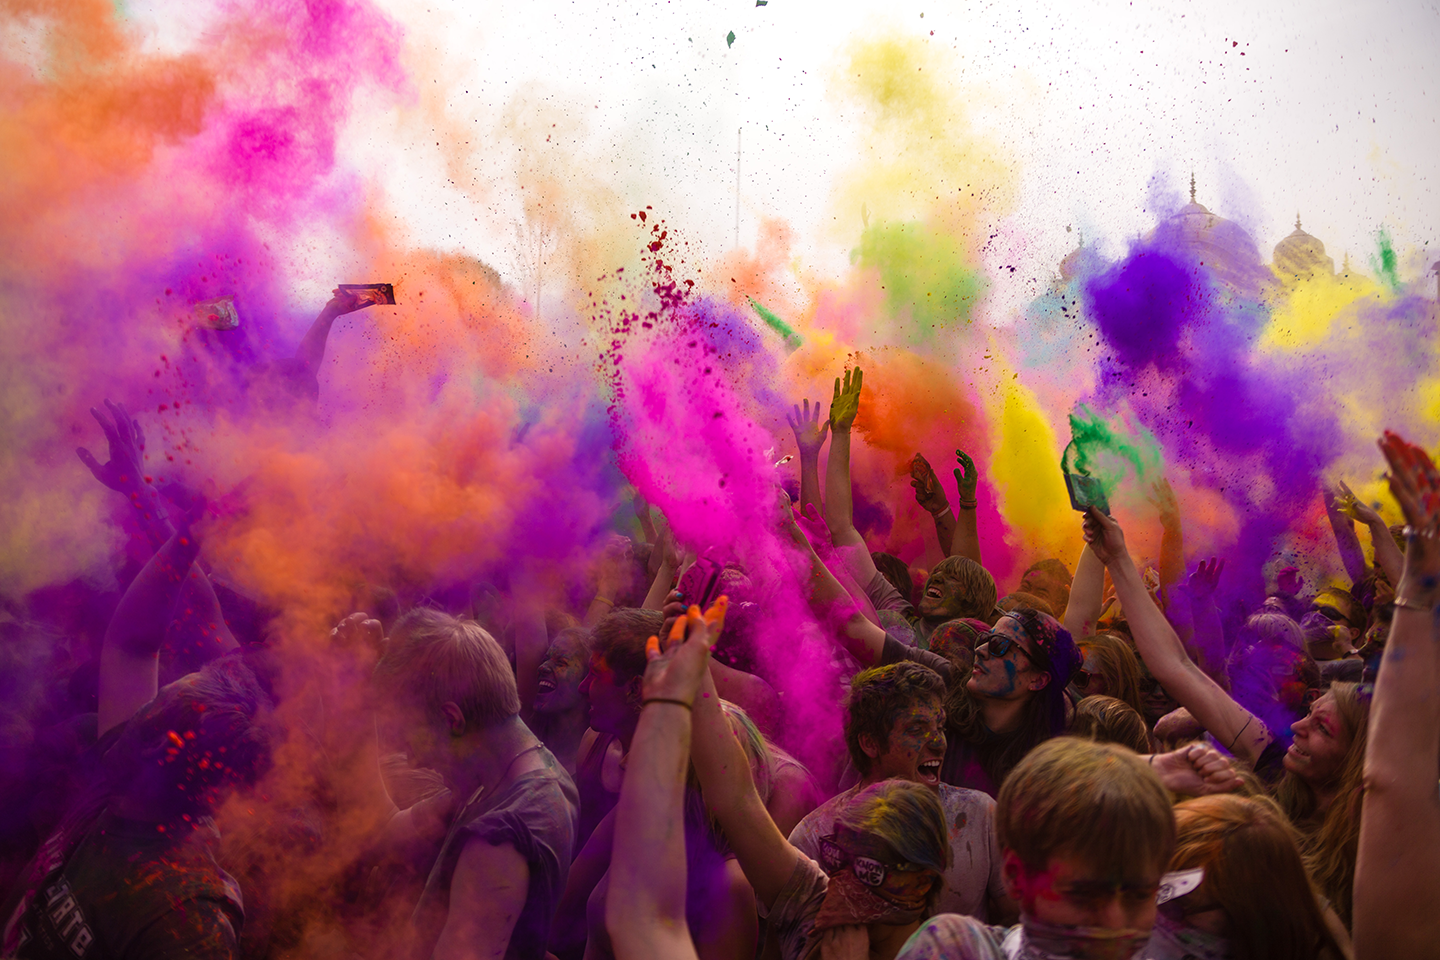 People throw colored powder into the air to celebrate the Holi Festival